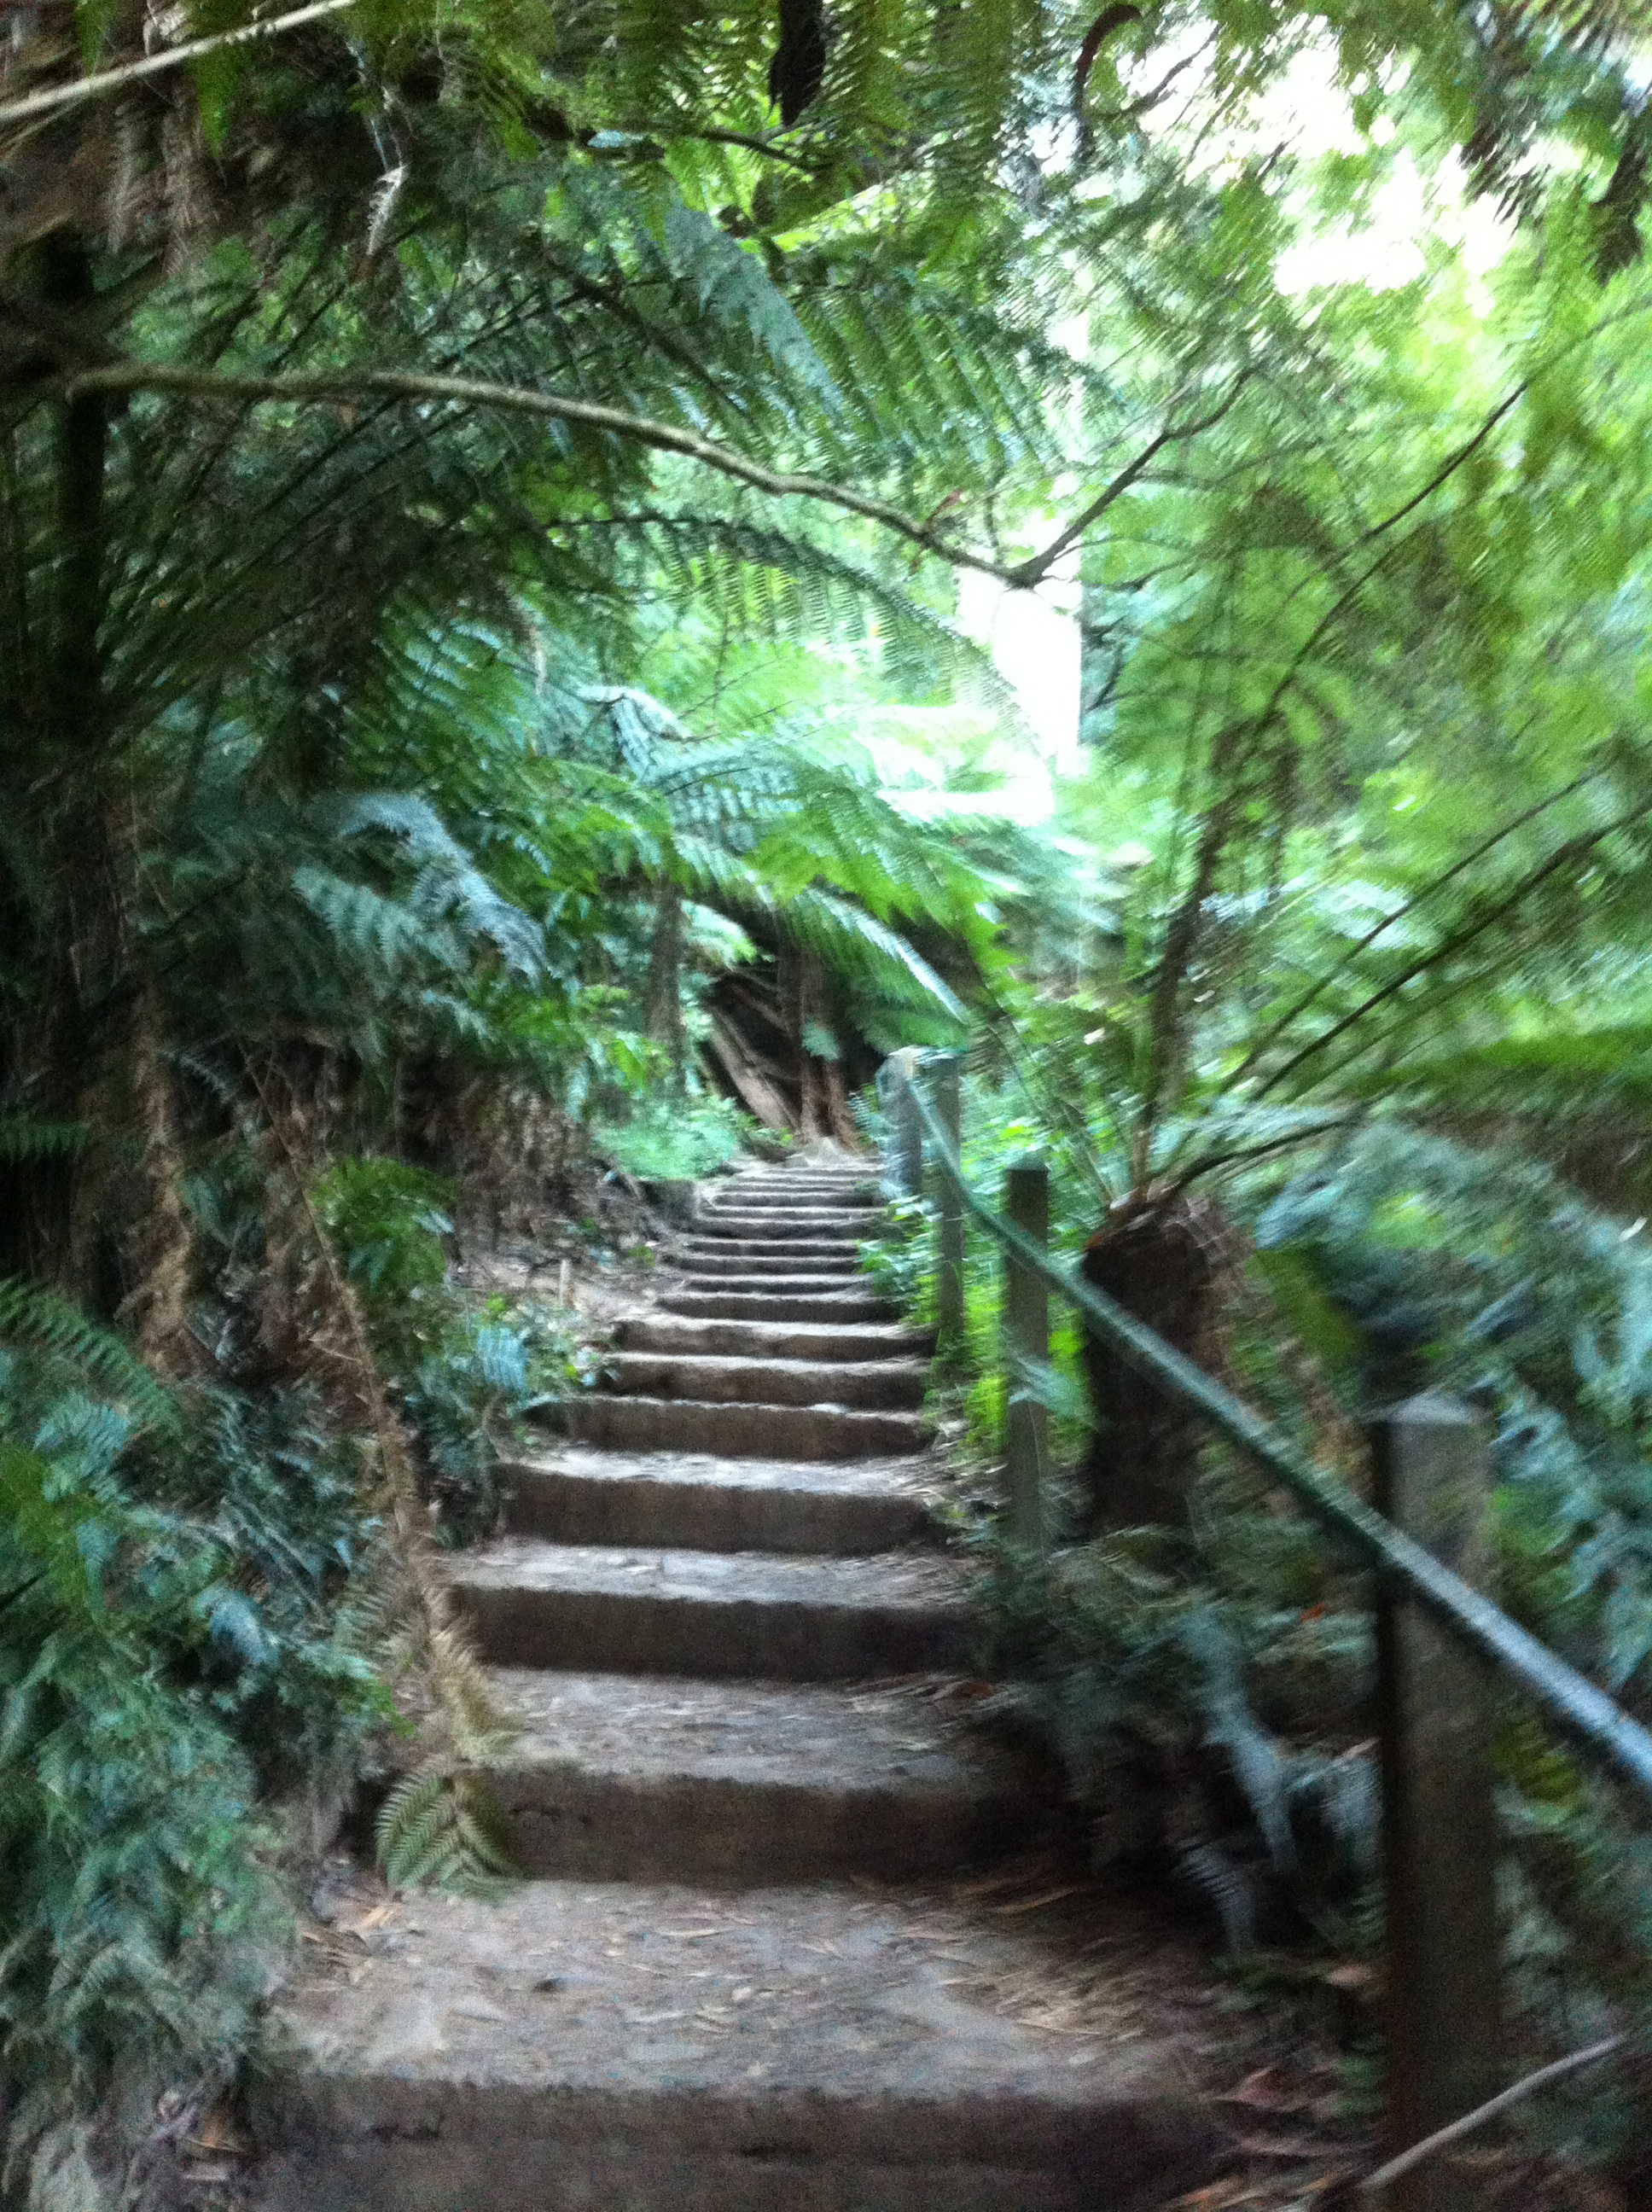 Steps To Apply Makeup For Beginners: 1,000 Steps Kokoda Track Memorial Walk